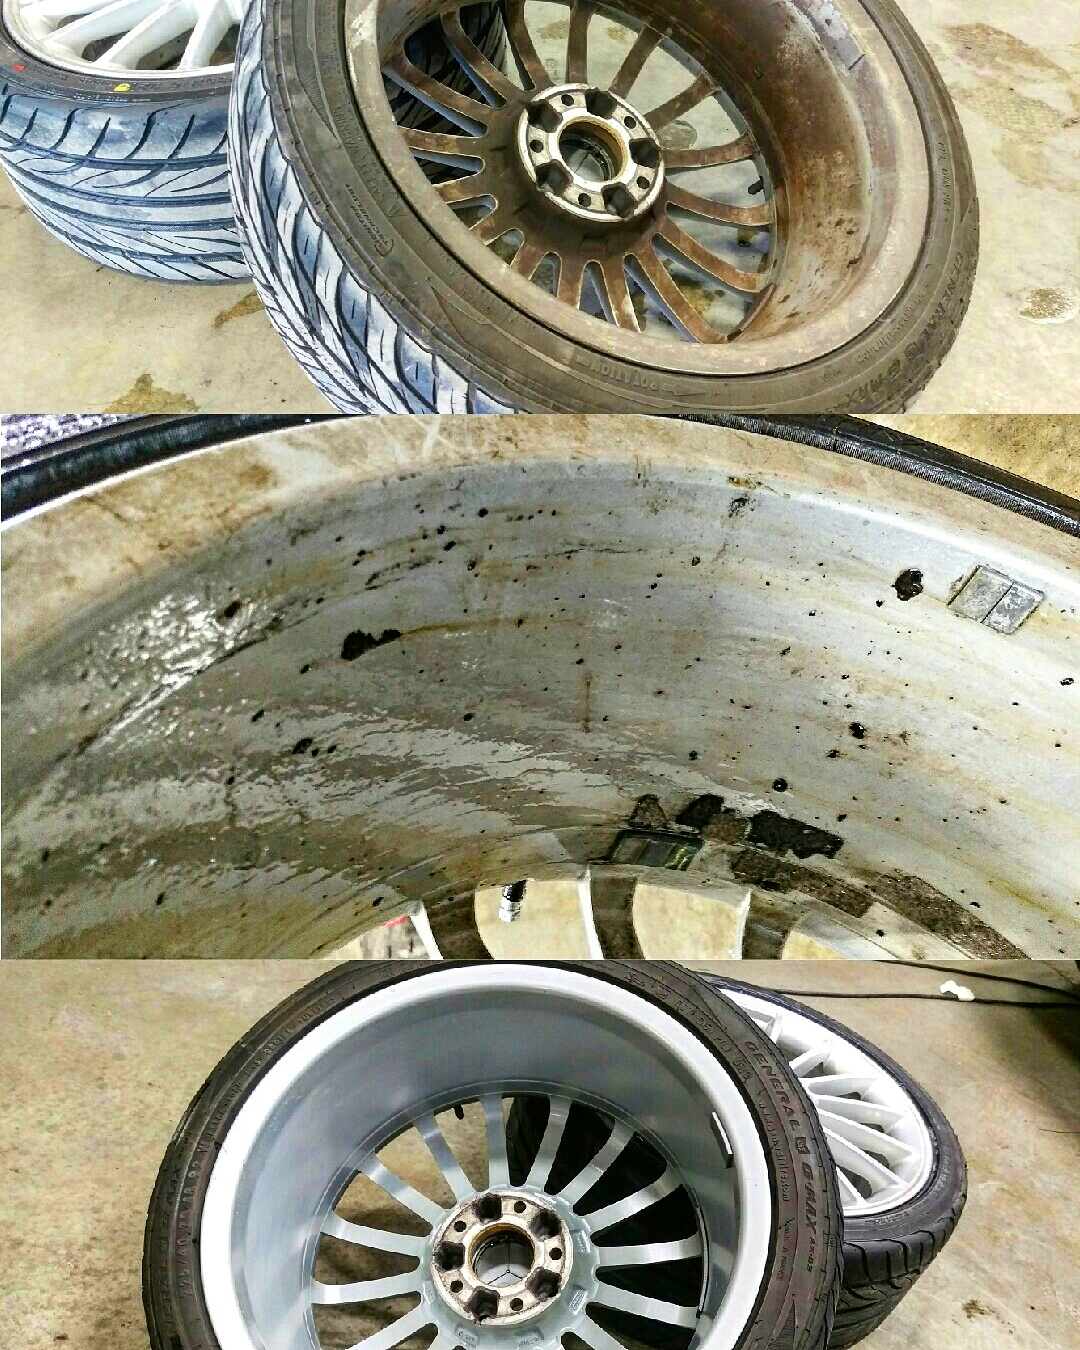 Wheel Removal & Decontamination